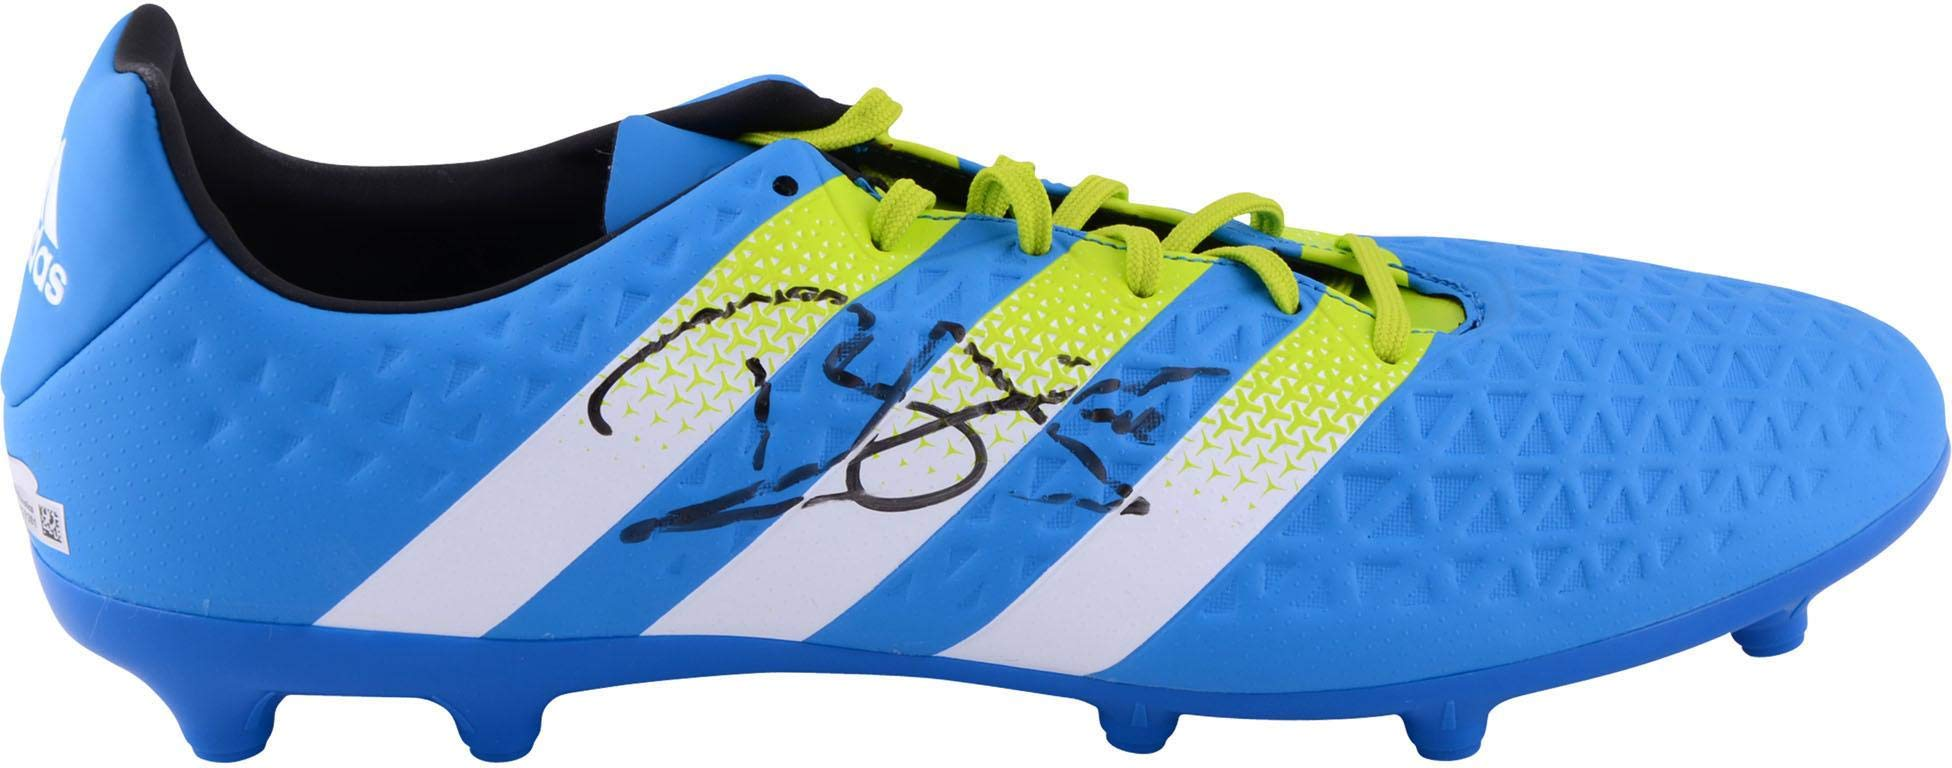 Dele Alli Tottenham Hotspur Autographed Blue and Green Adidas X 16.3 Soccer Cleat ICONS Fanatics Authentic Certified